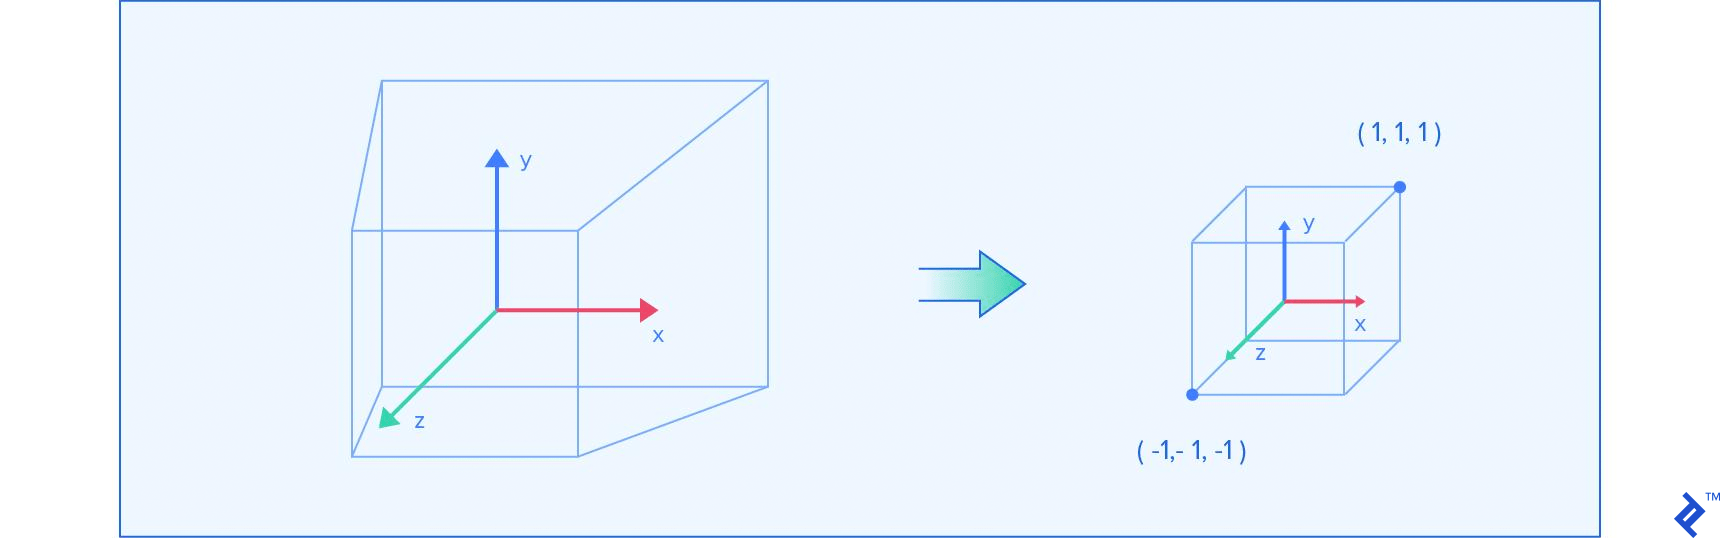 Frustum getting transformed into the proper framebuffer dimensions using perspective projection